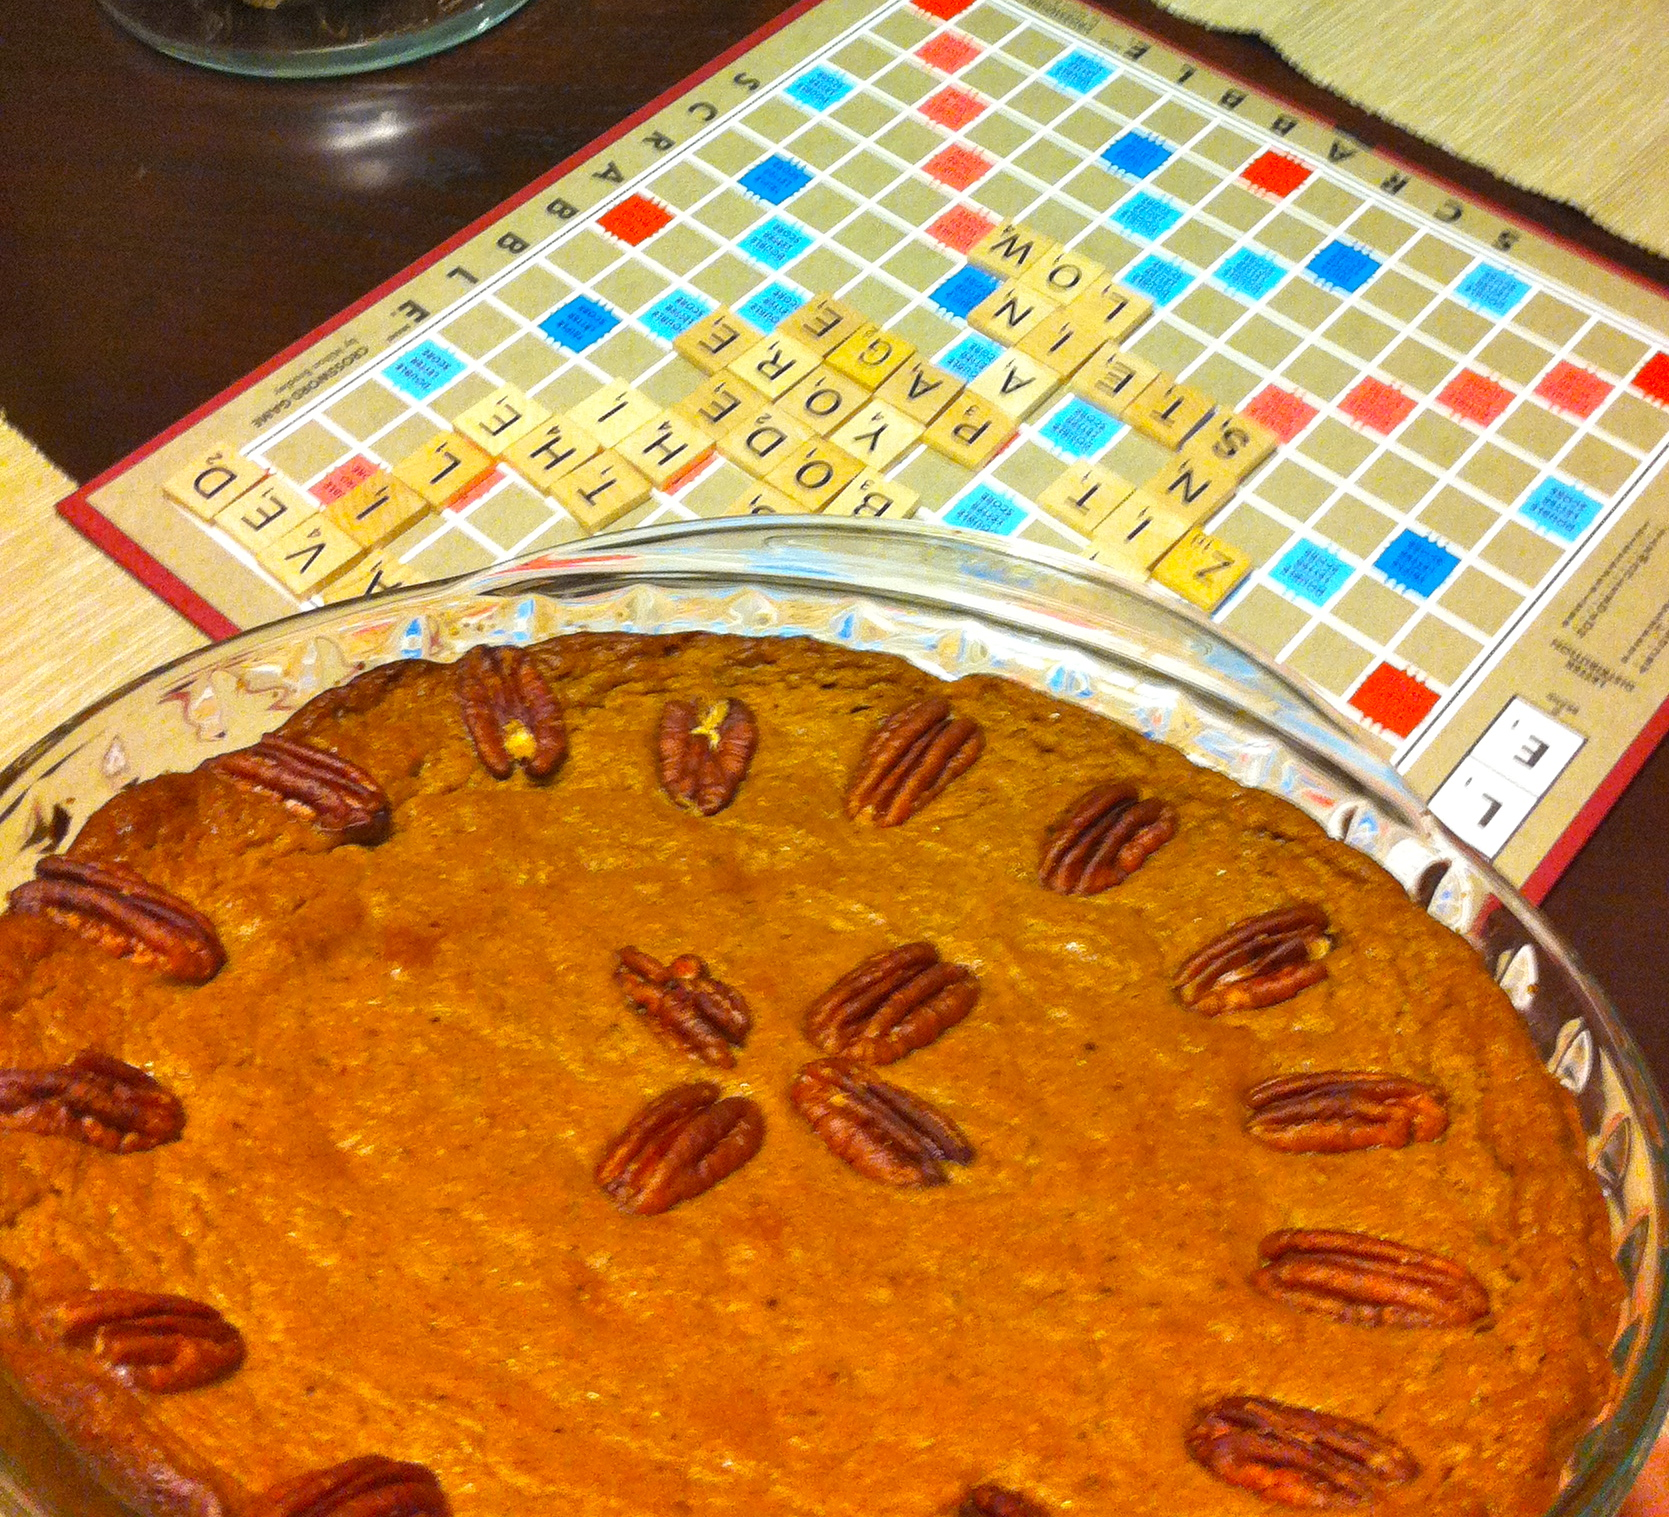 Circa Thanksgiving 2013...pie...best enjoyed with Scrabble